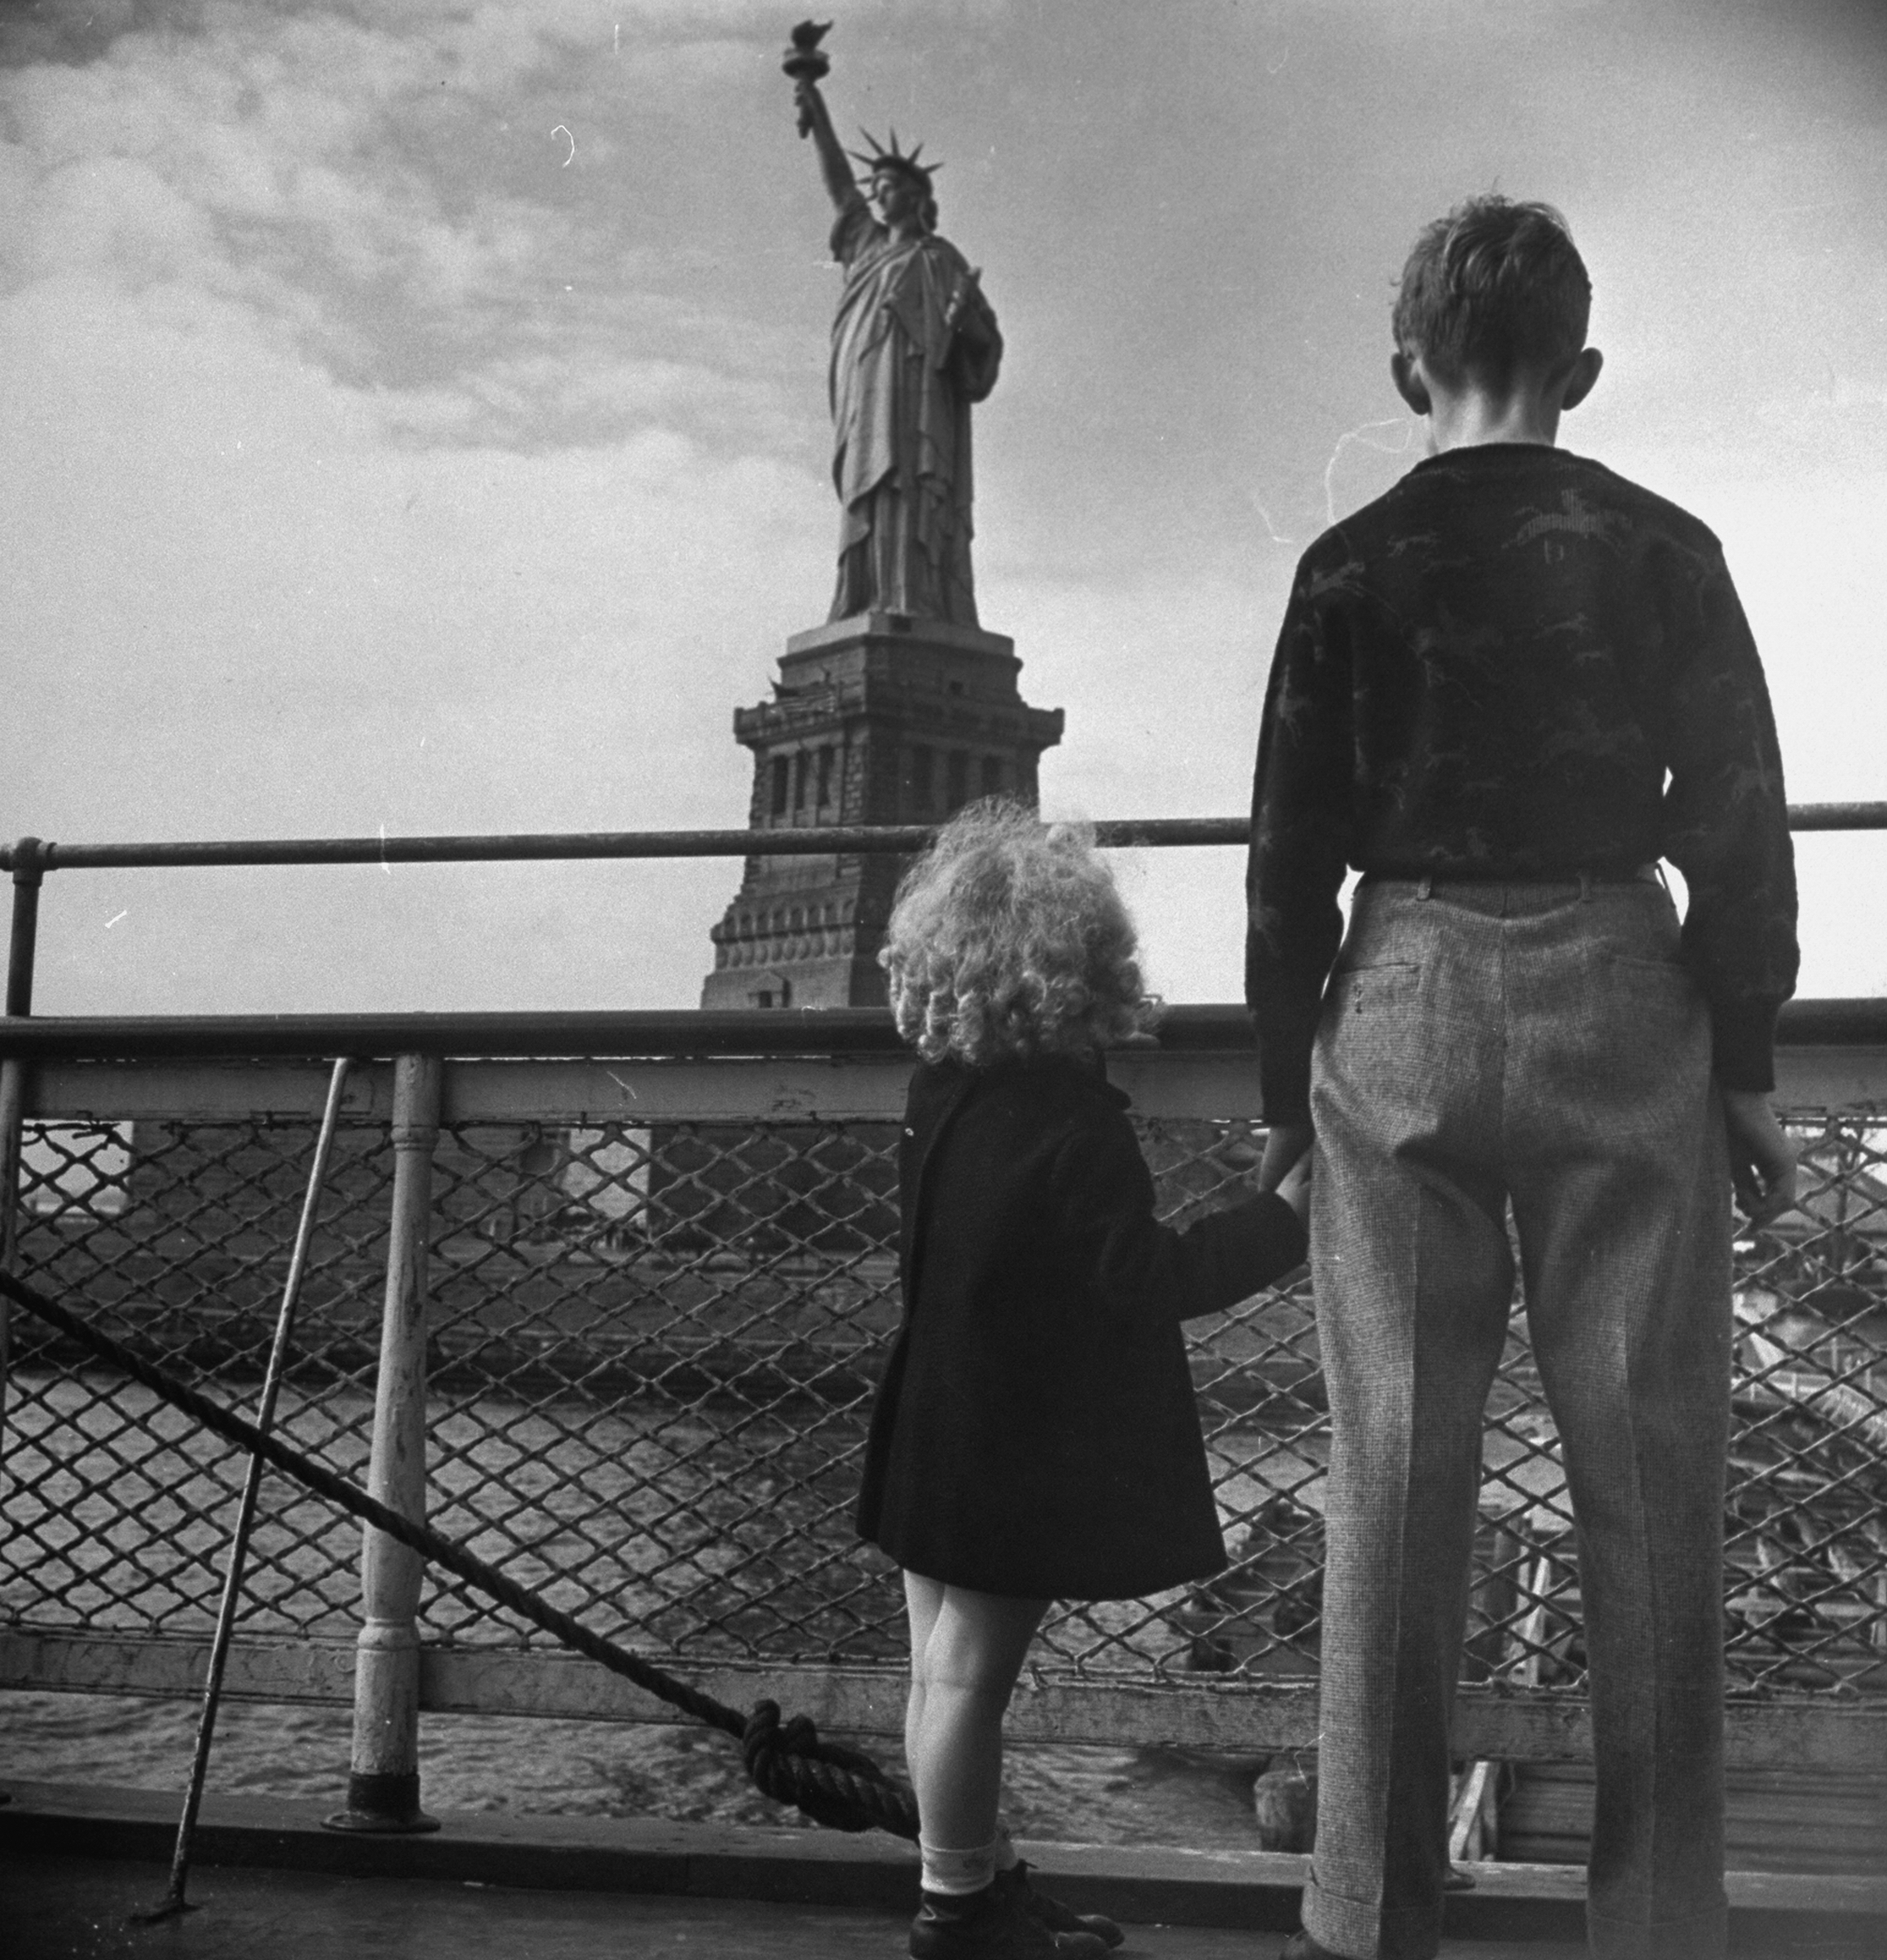 Refugee children gazing at Statue of Liberty from railing of boat, ca. 1946.